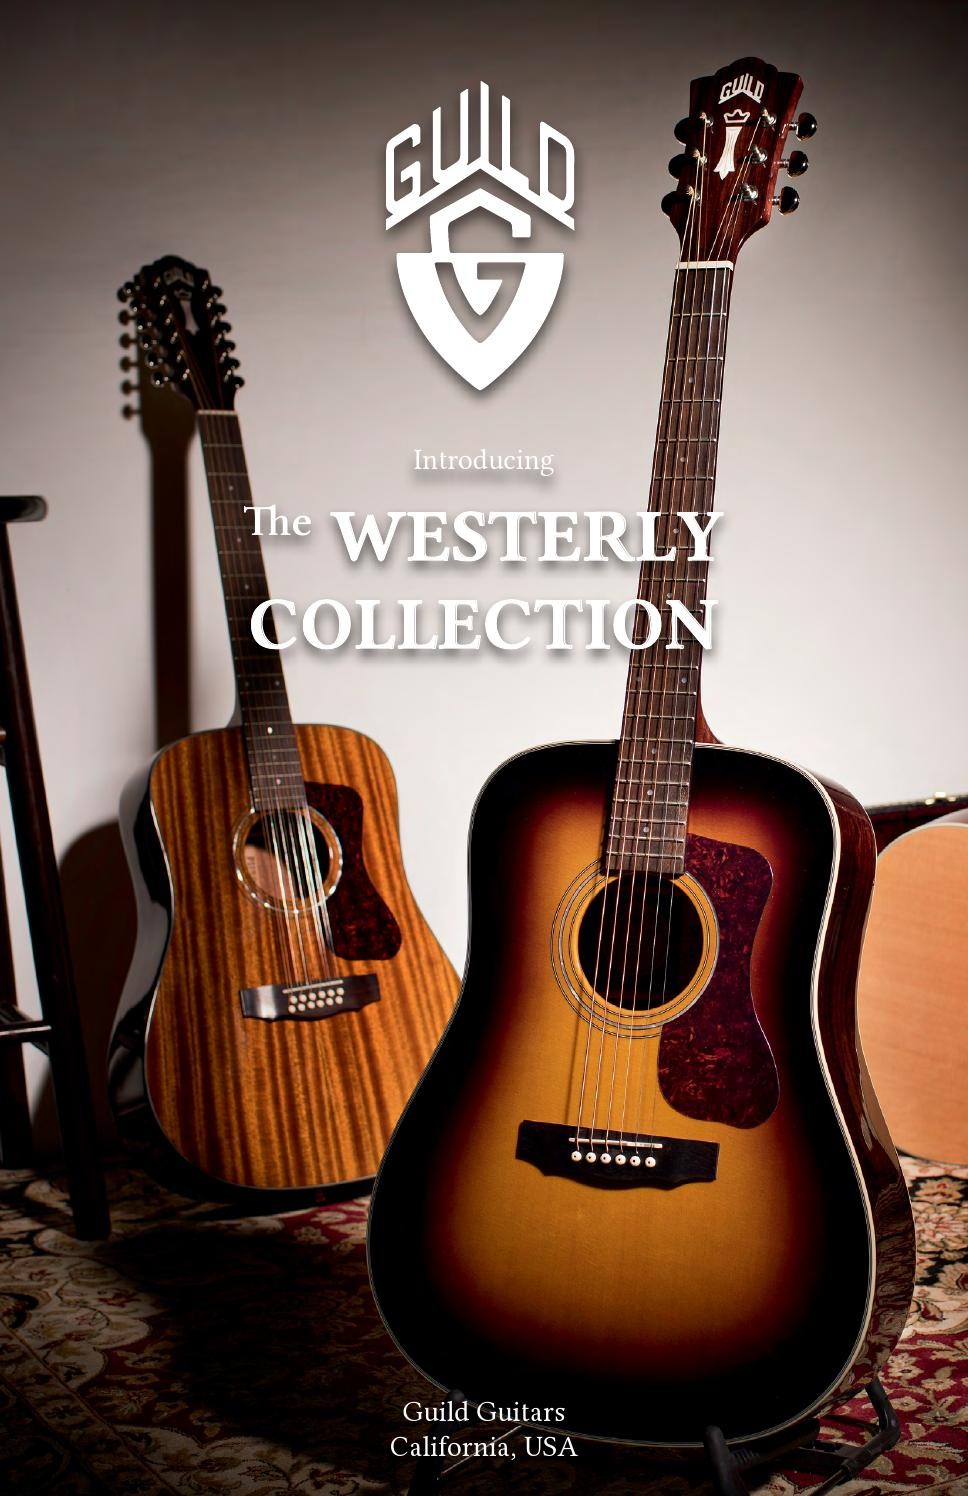 Guild Guitars | The Westerly Collection by Guild Guitars